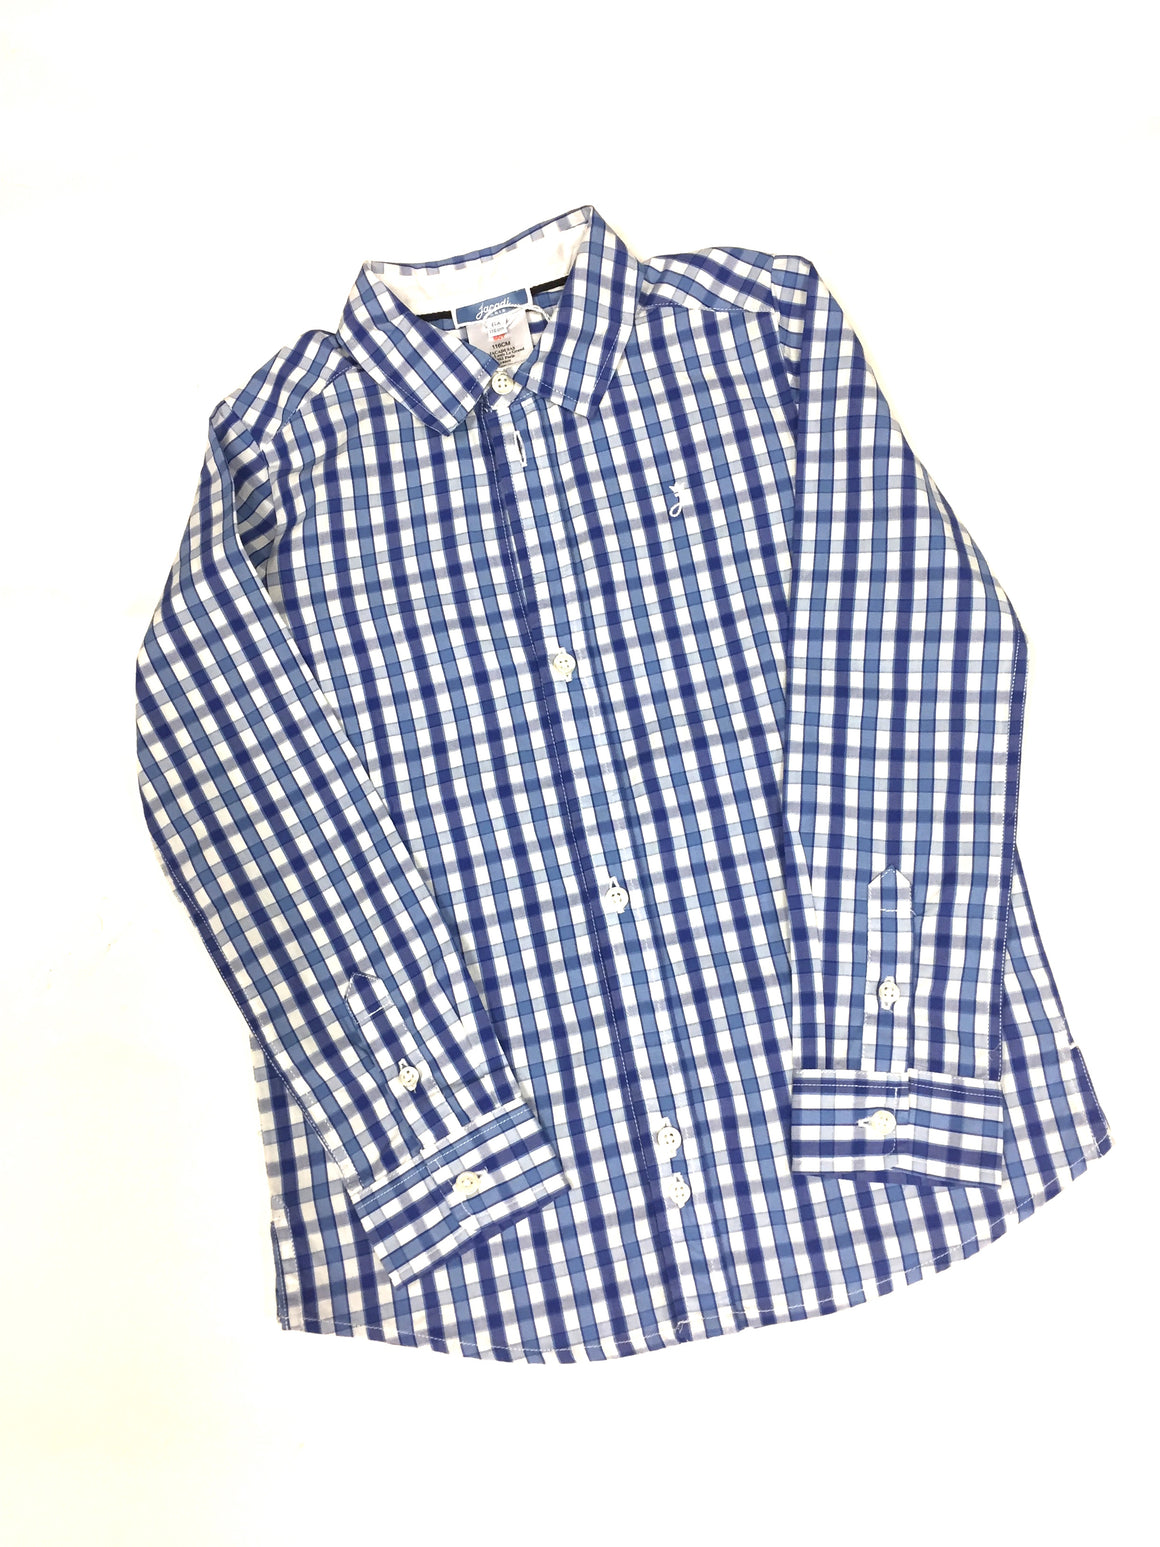 JACADI   New Navy/White Gingham-Print Cotton Boys' Button Down Shirt Size:  6 Years